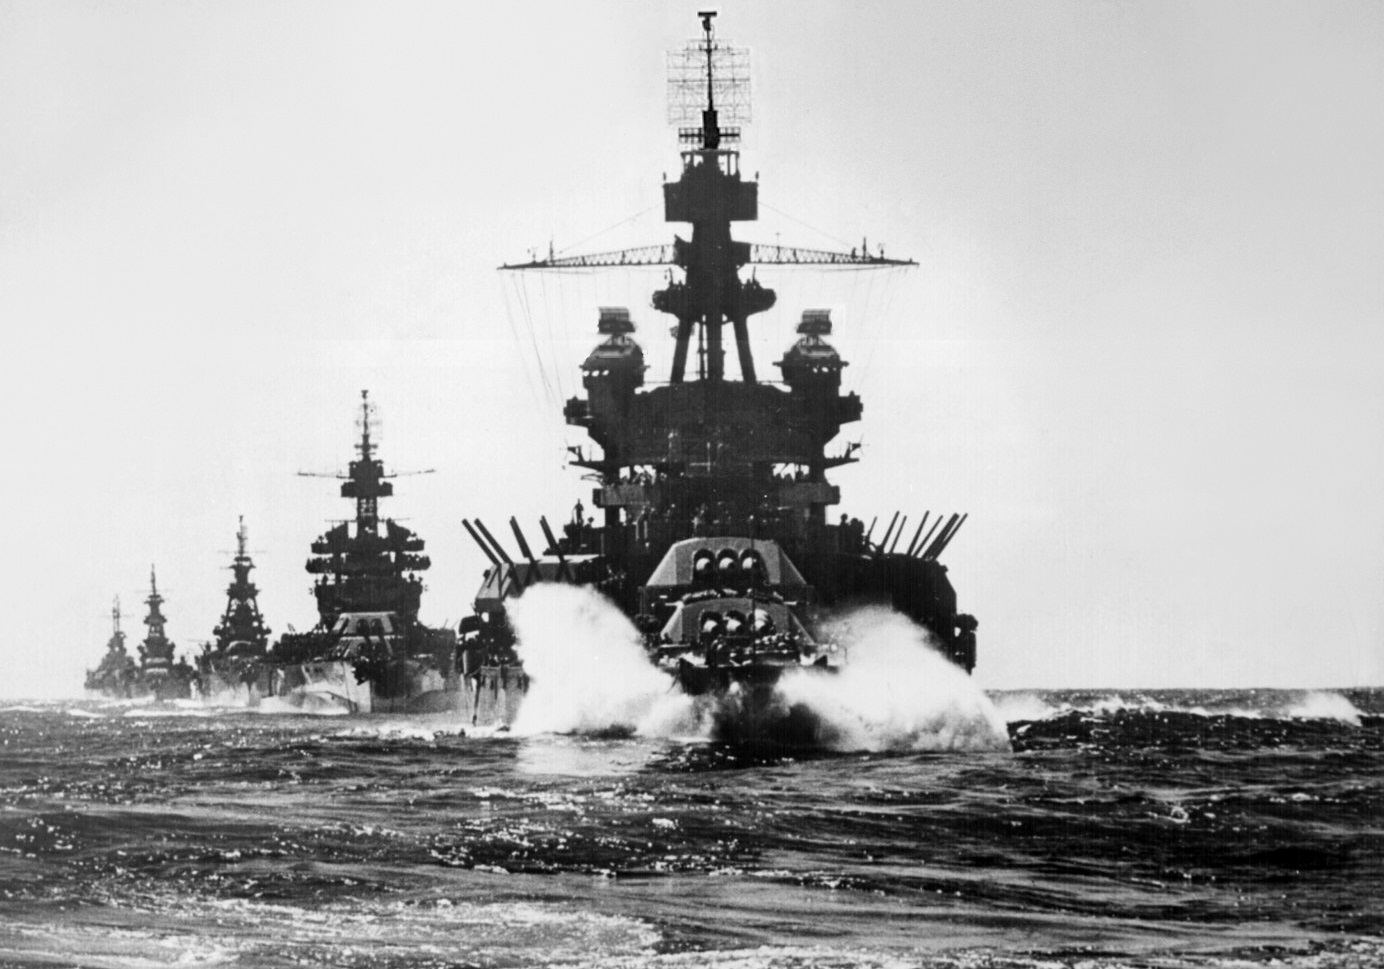 Dropping Shells: 5 Biggest Battleship Battles of All Time